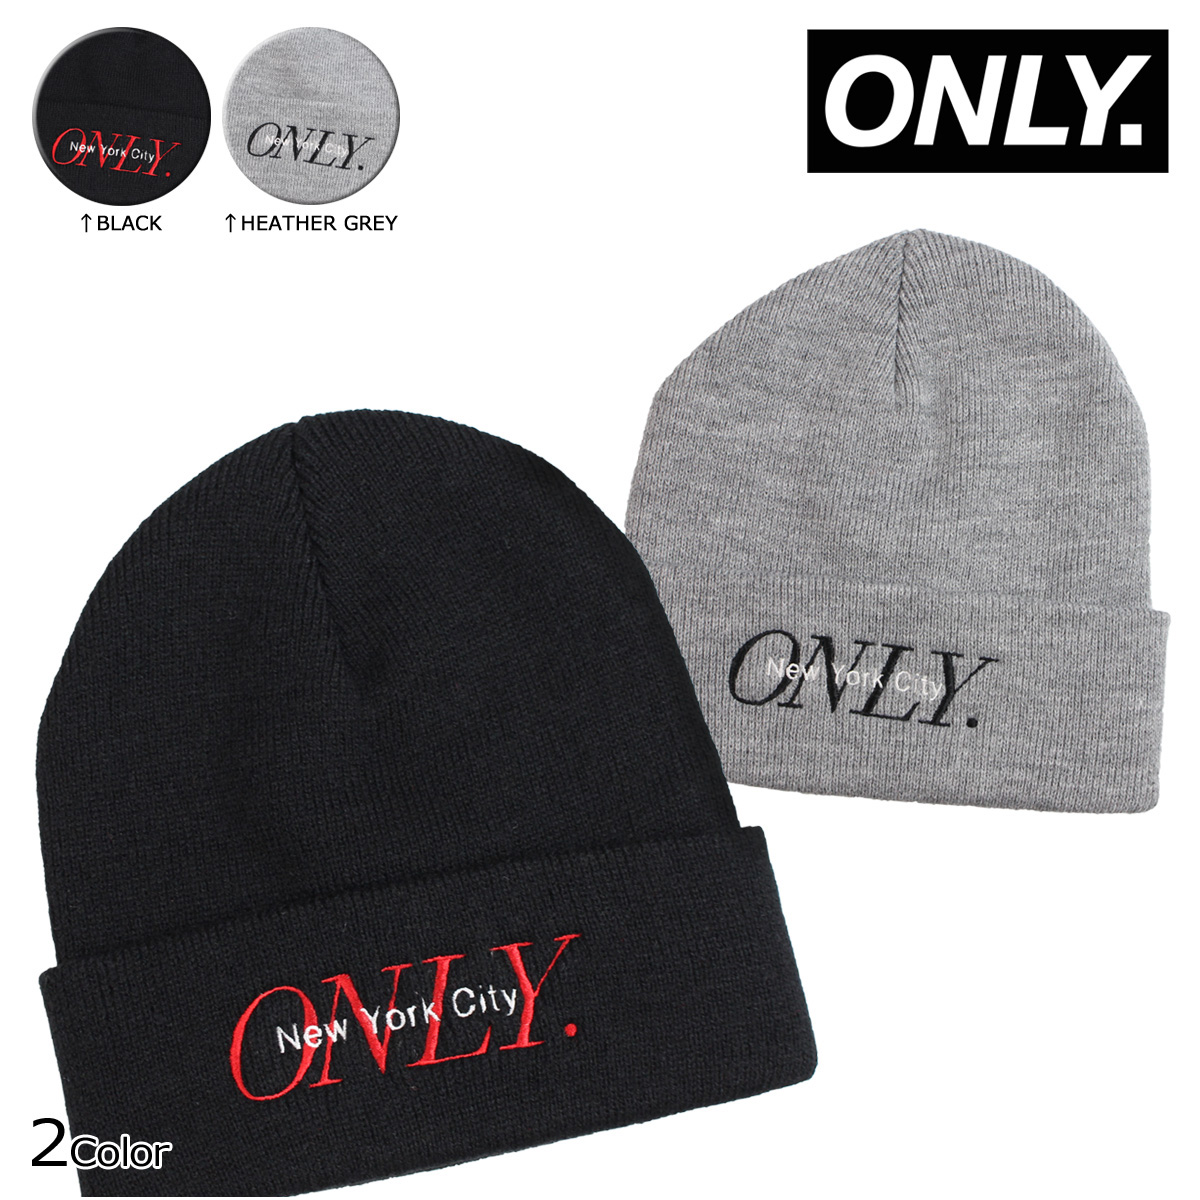 ALLSPORTS  ONLY NY New York only knit hat Beanie knit Cap mens ... e17c4e0d101